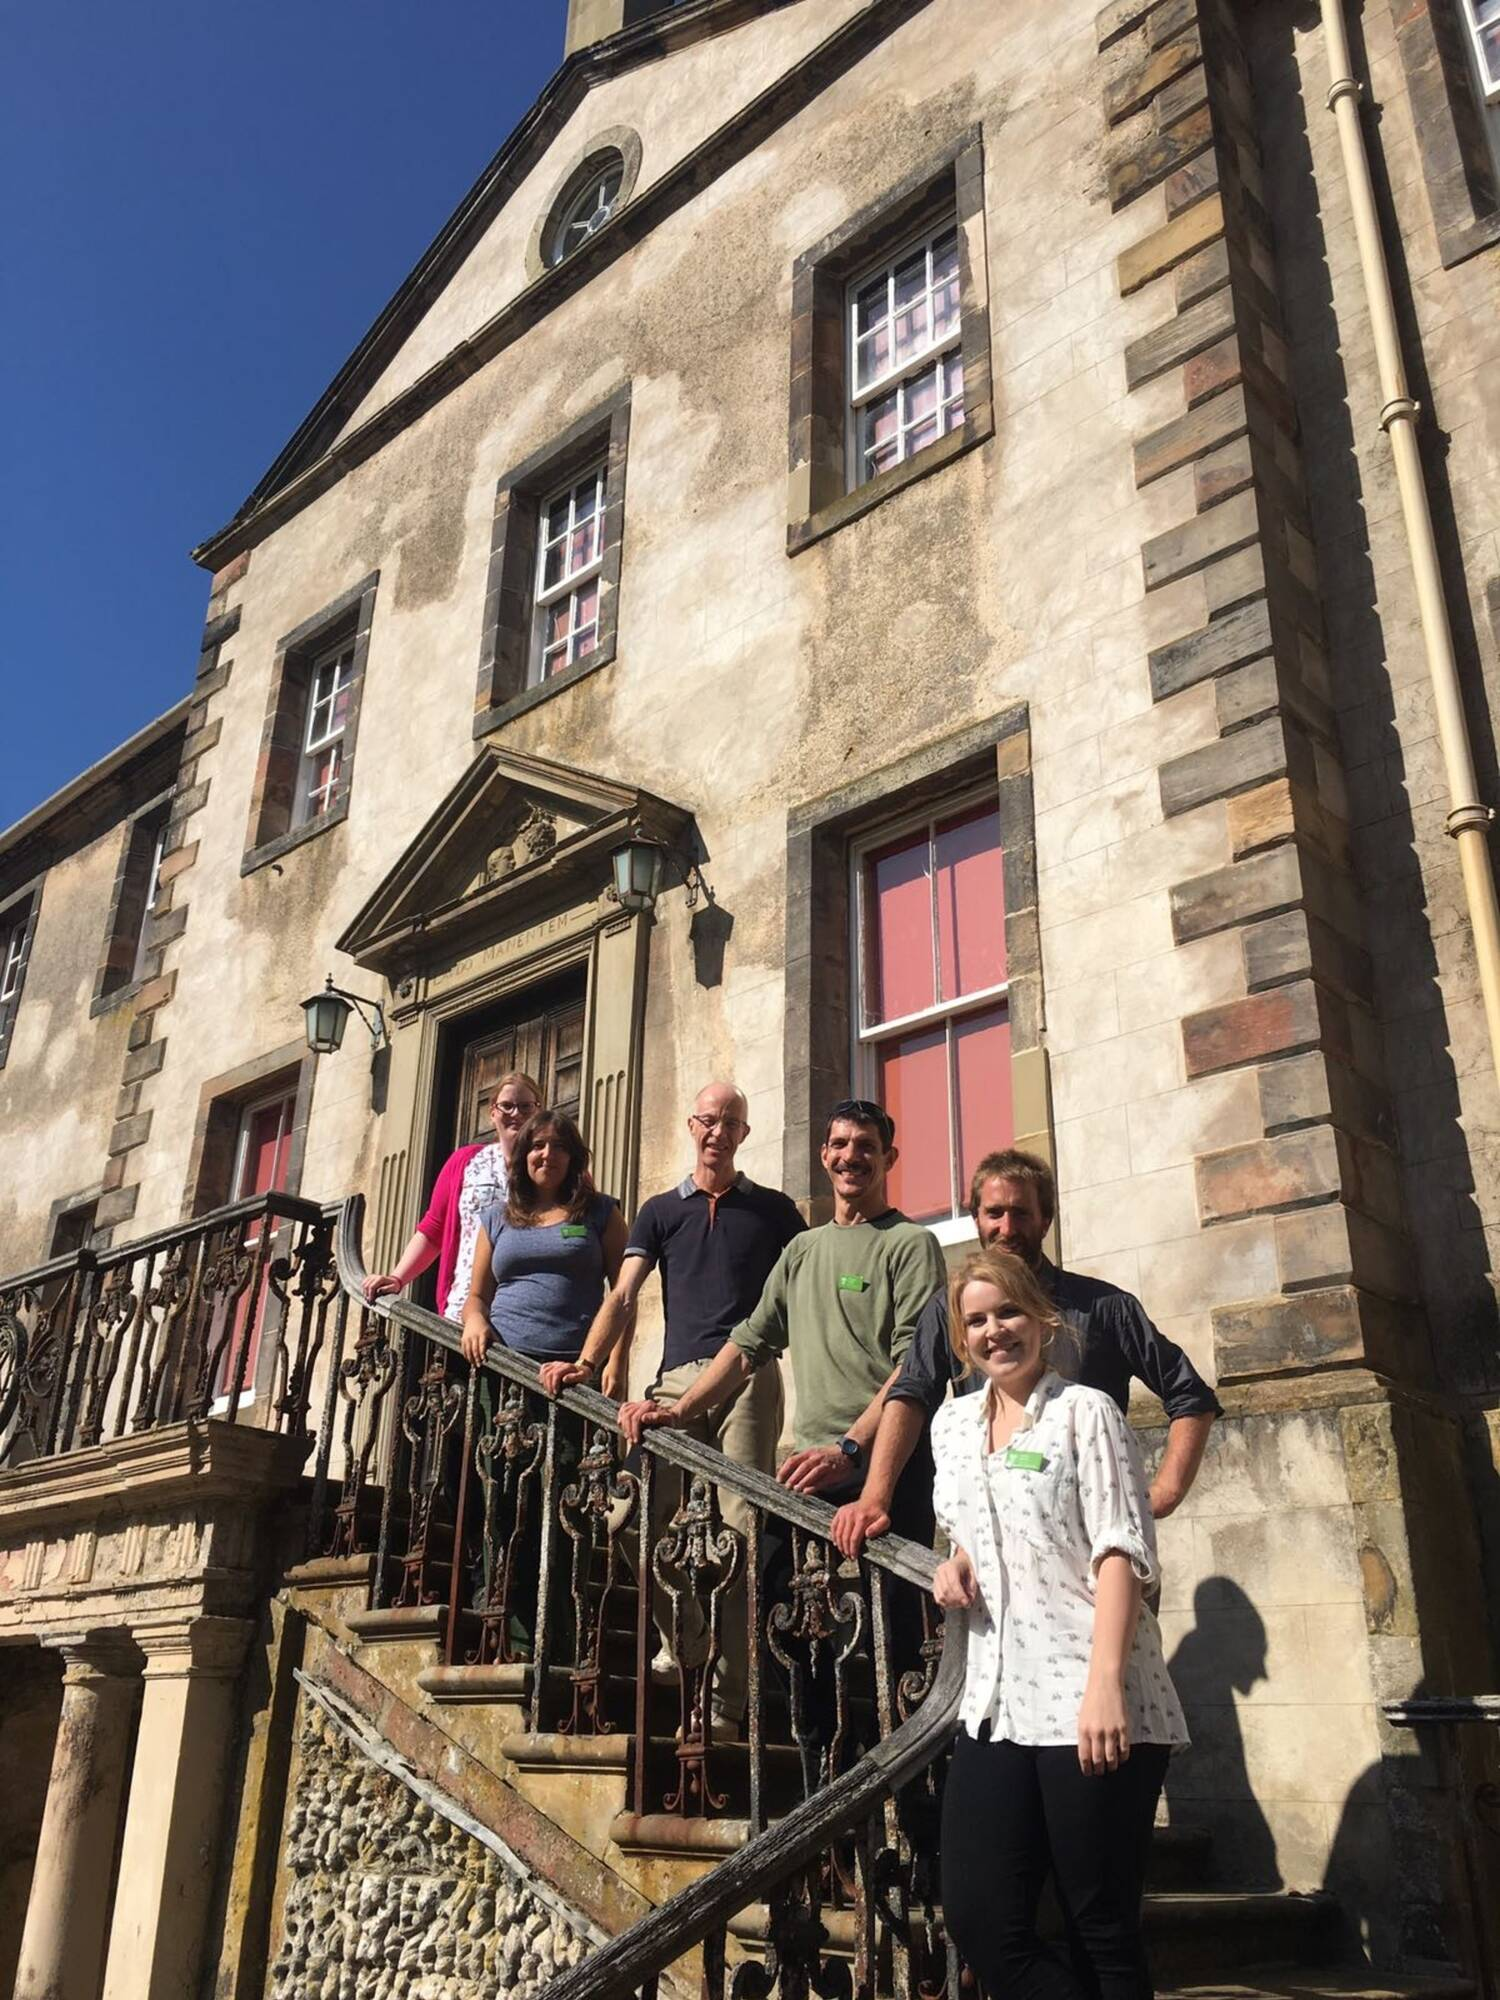 6 people stand on ascending exterior steps of Newhailes House, holding the handrail, on a bright sunny day.